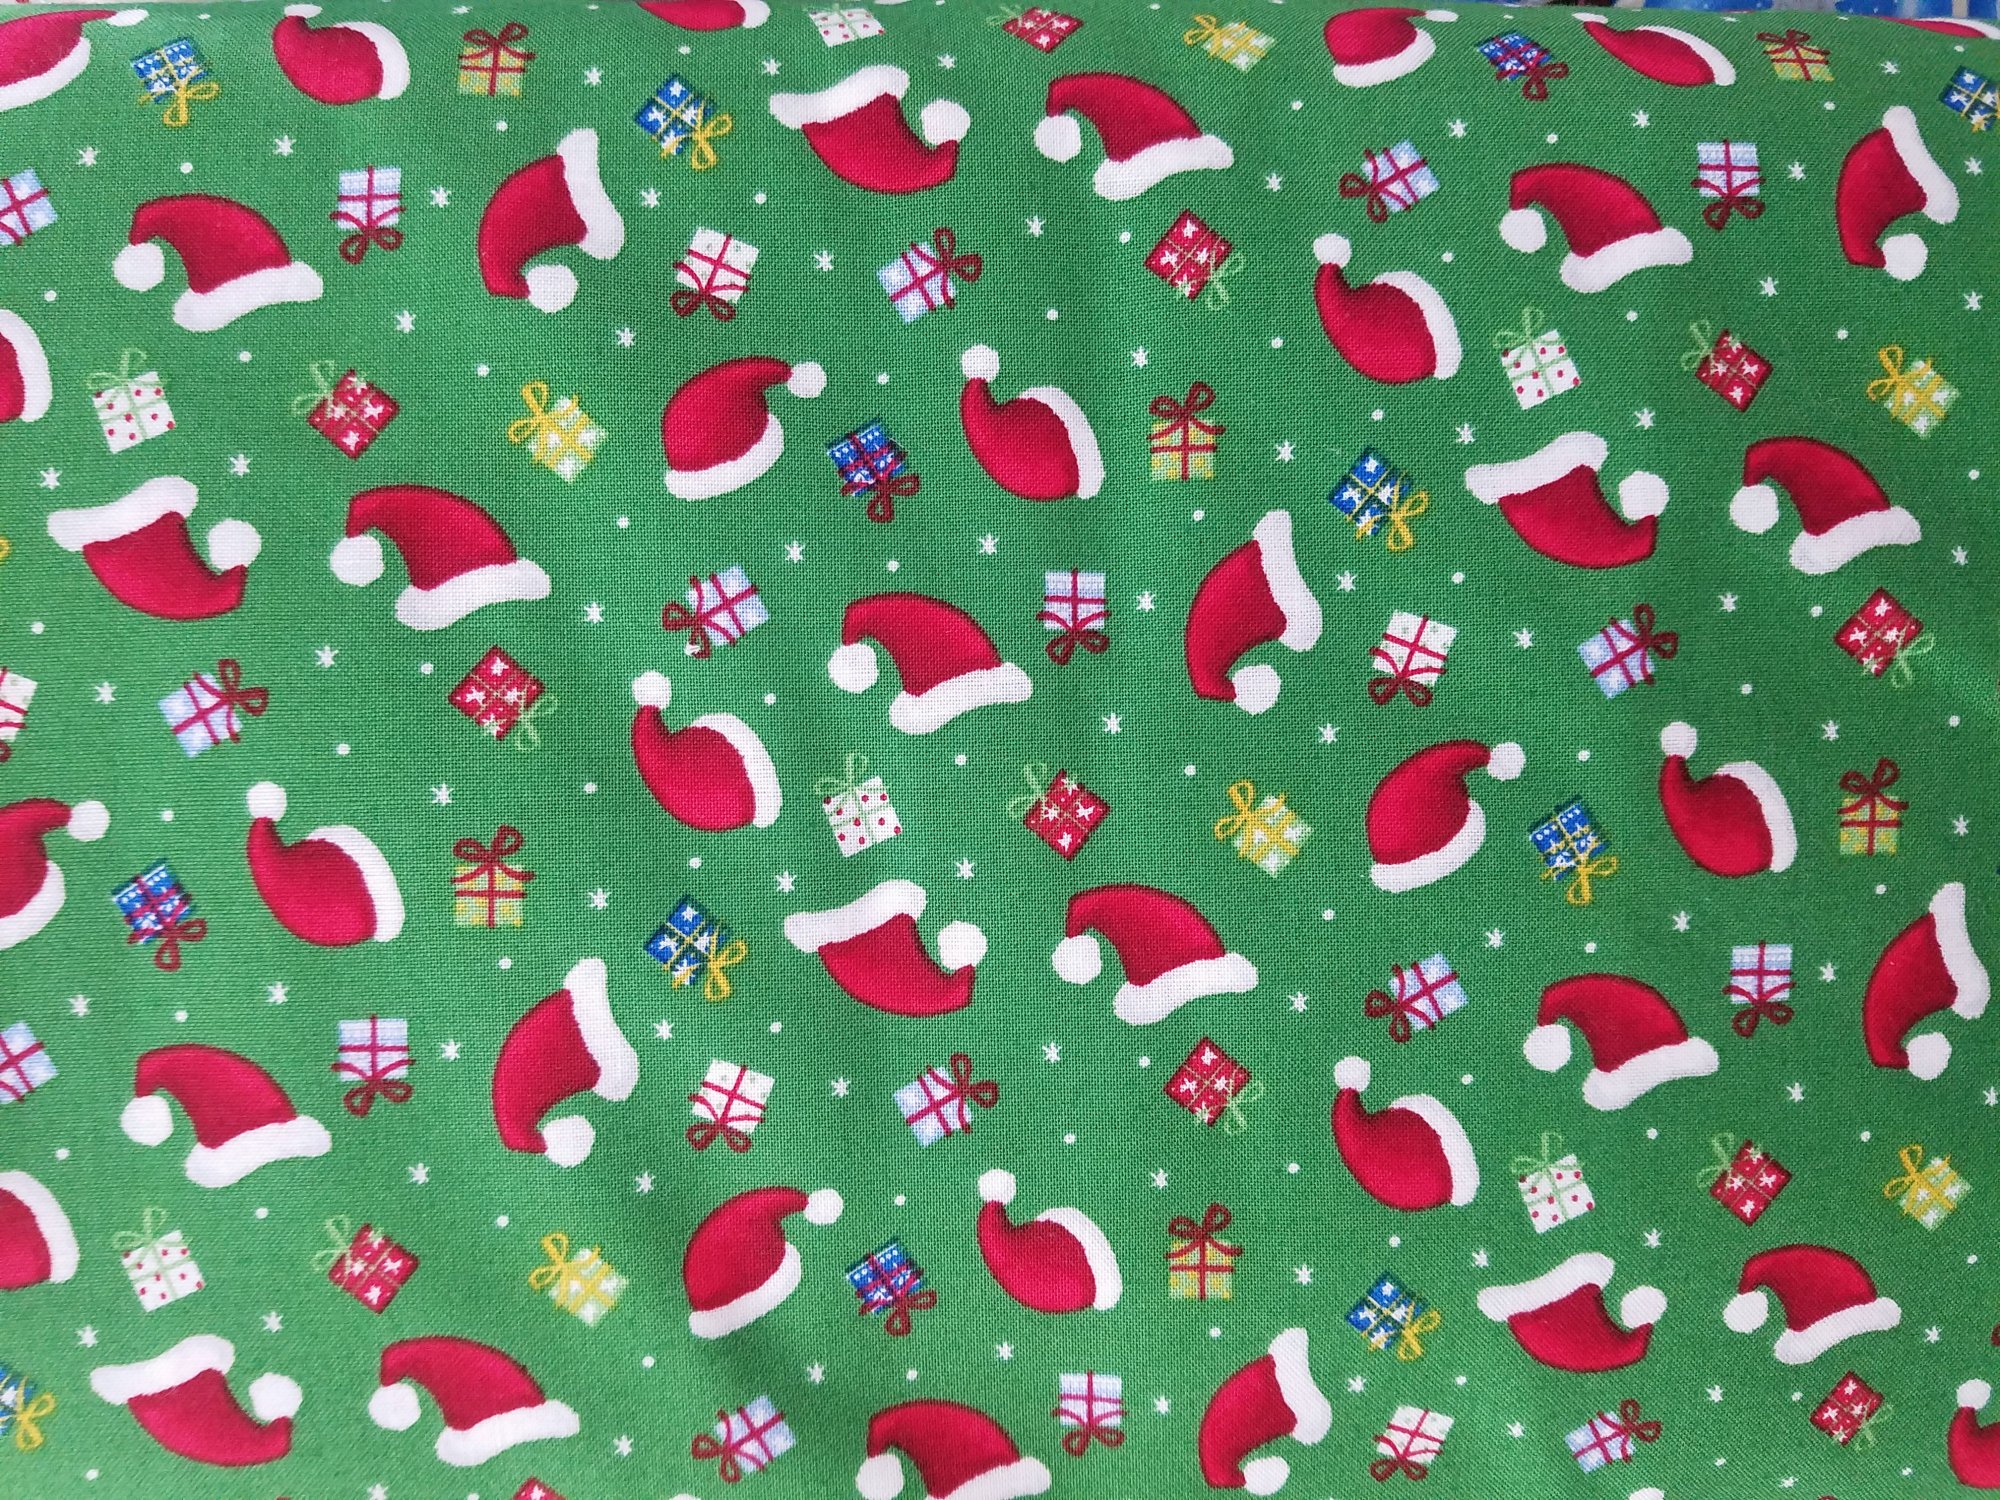 Santa's Little Helpers-Hats and Gifts